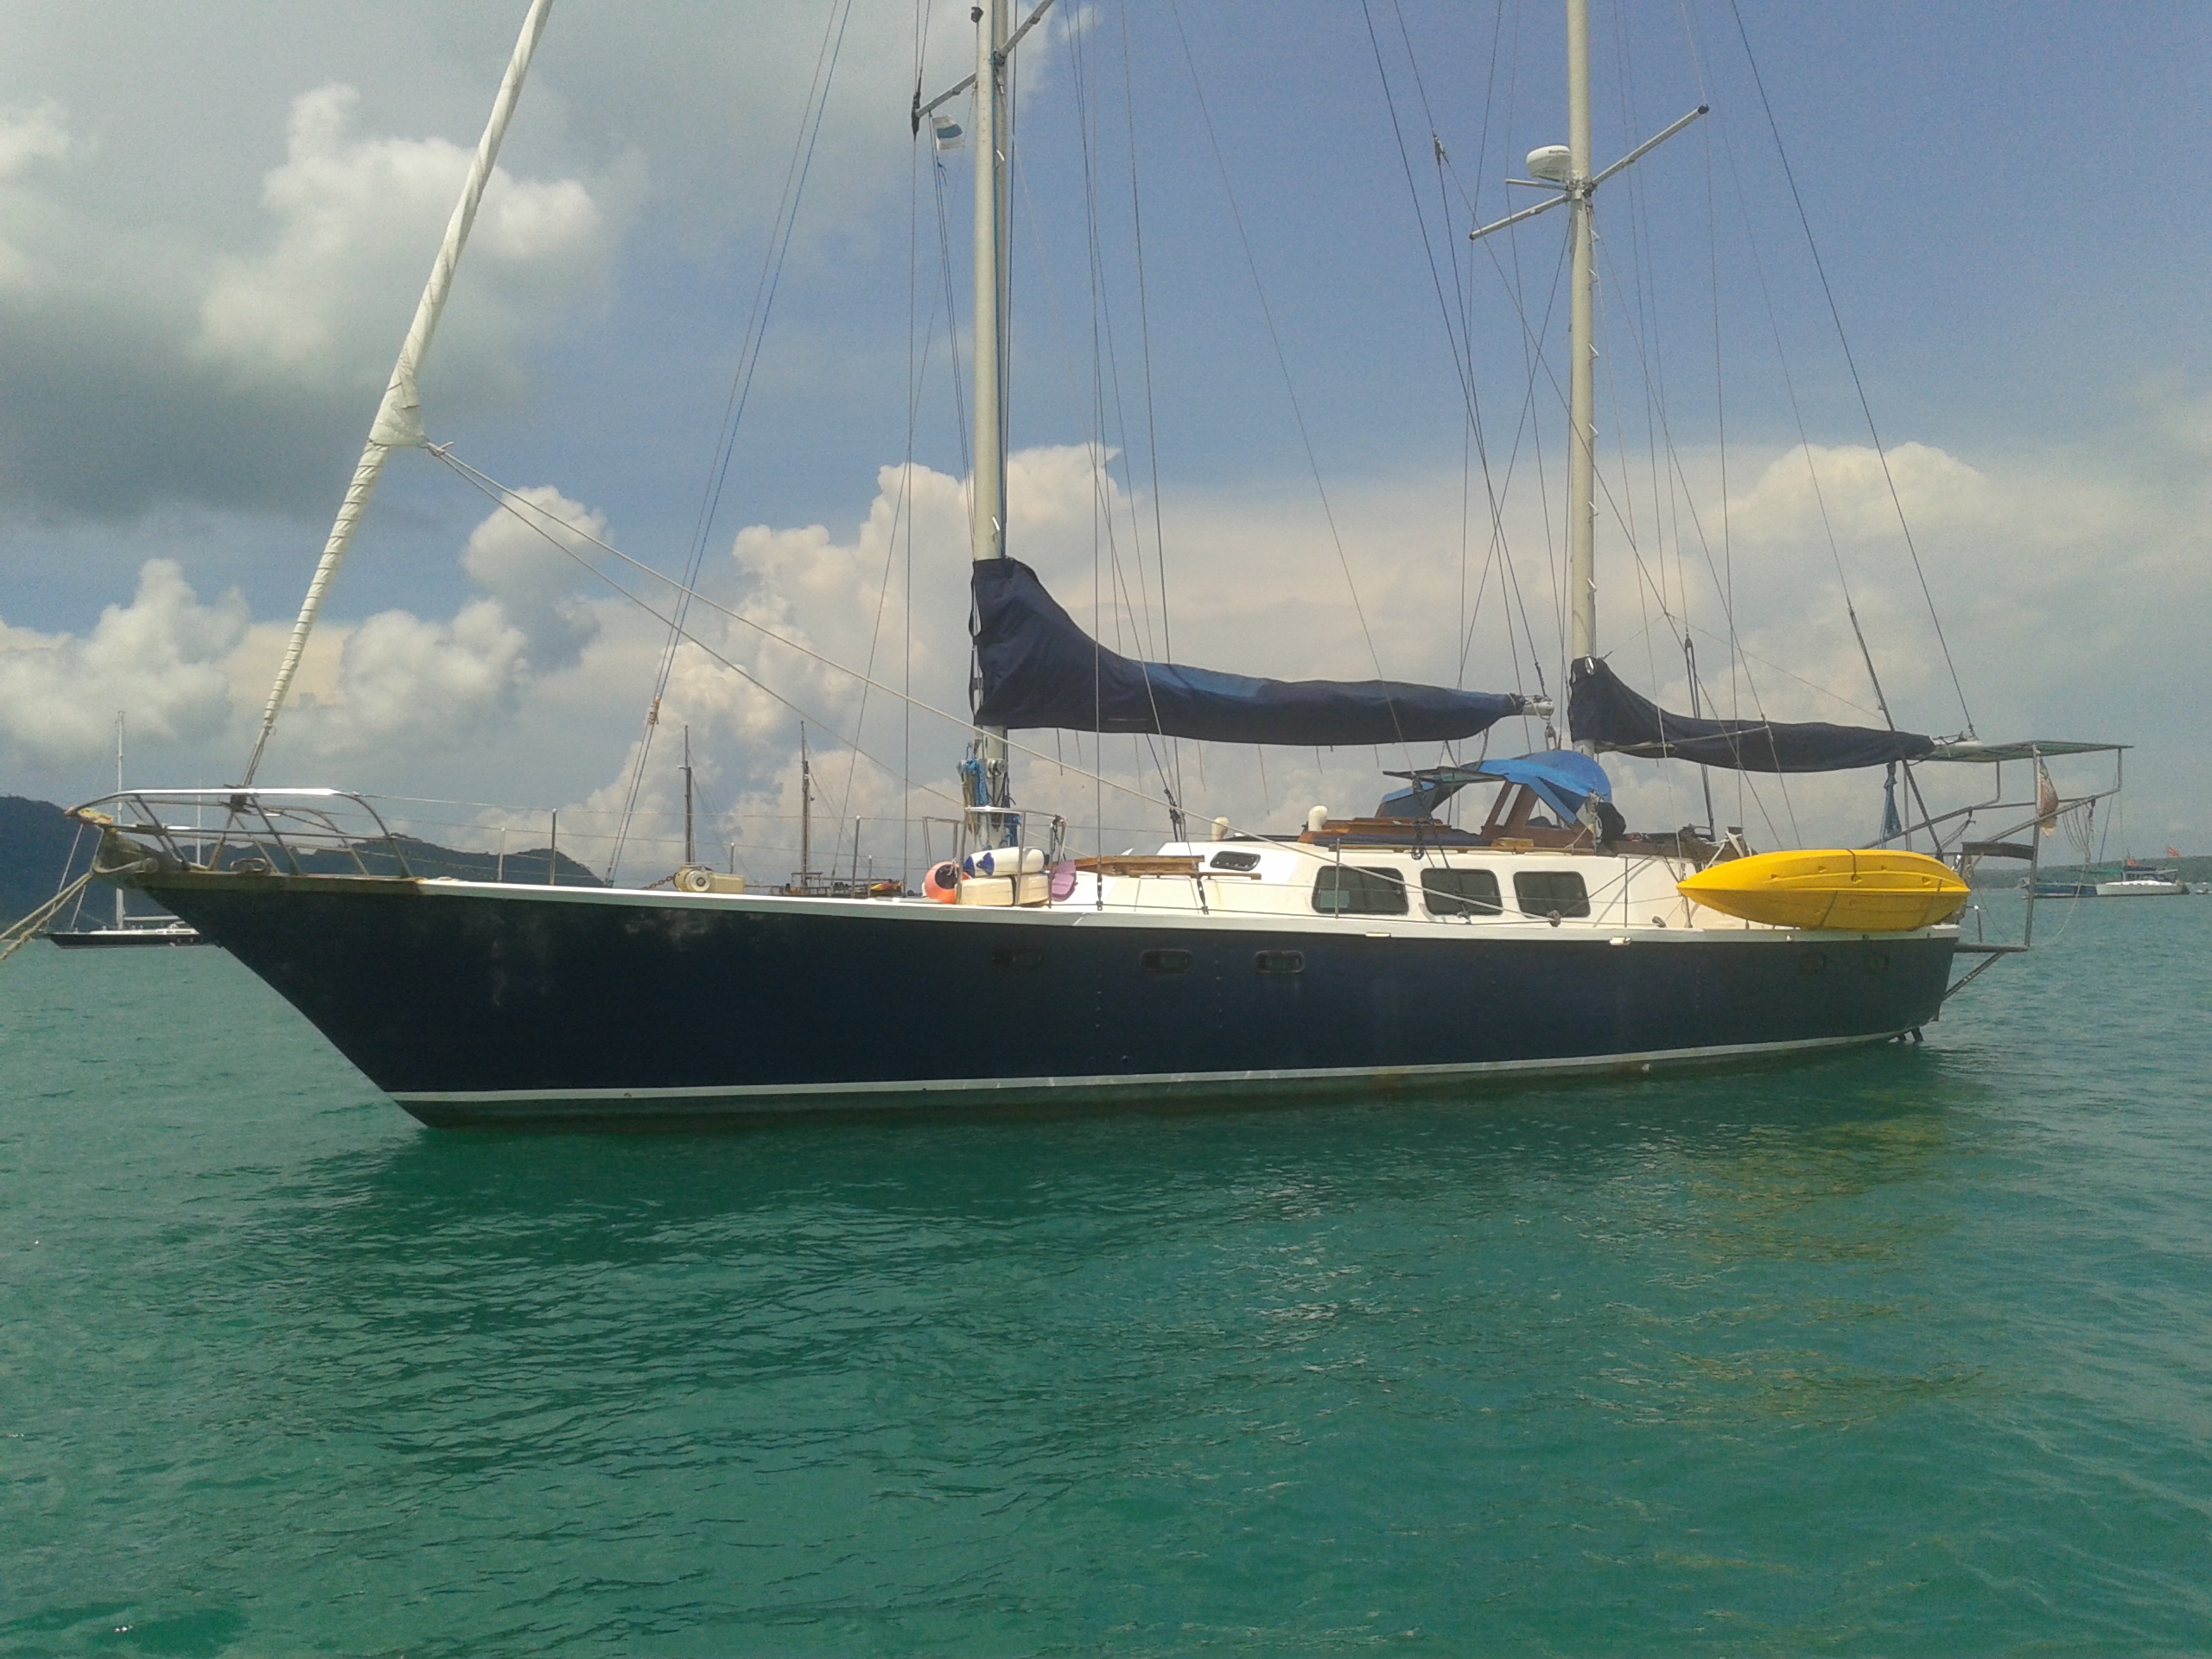 63 ft  Expedition, Charter boat REDUCED TO $65,000 usd